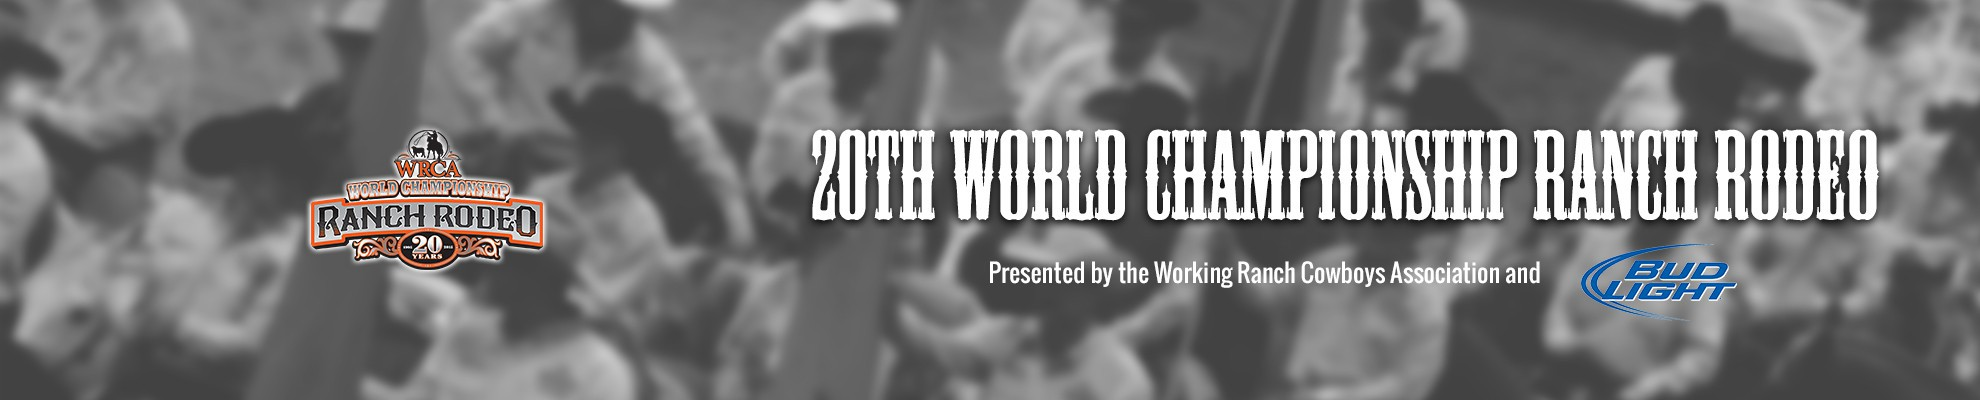 Vote Today Who Will Win The 20th World Championship Ranch